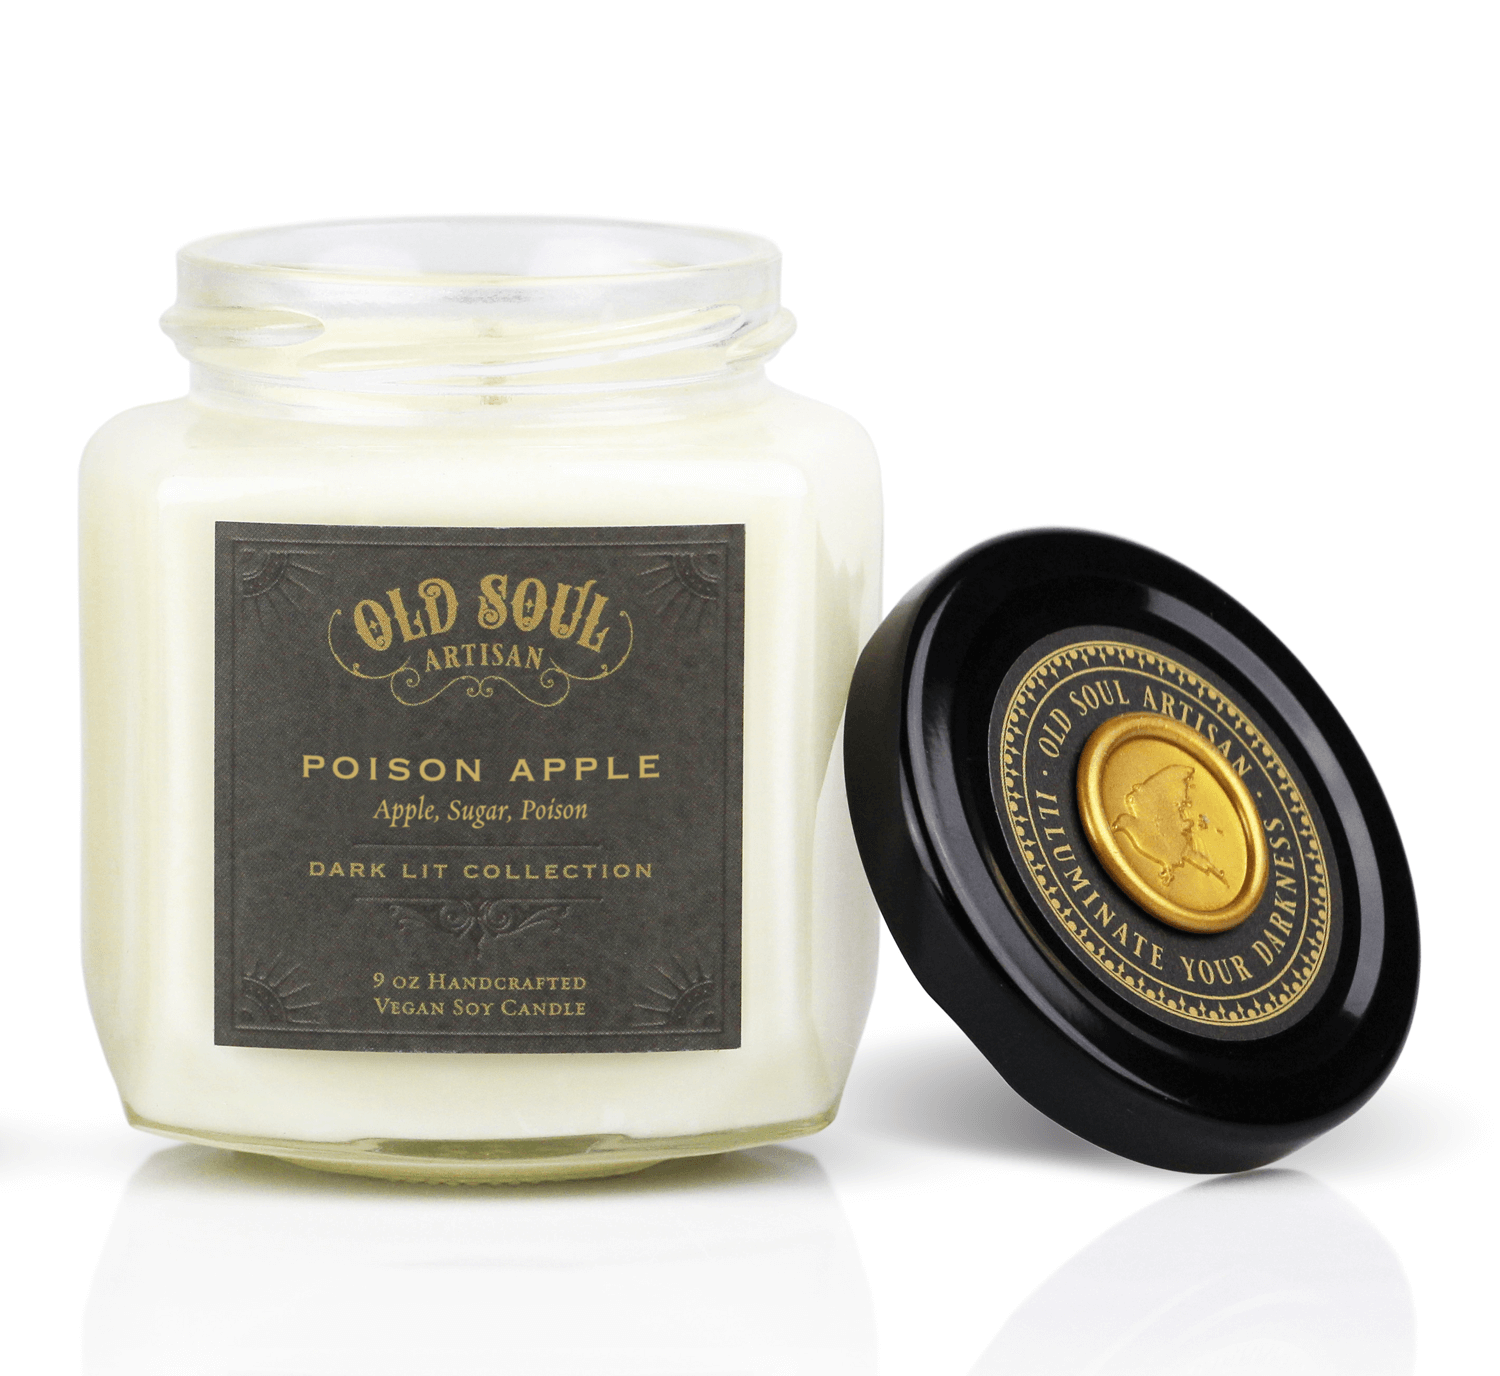 Poison Apple Soy Candle (apple, sugar)